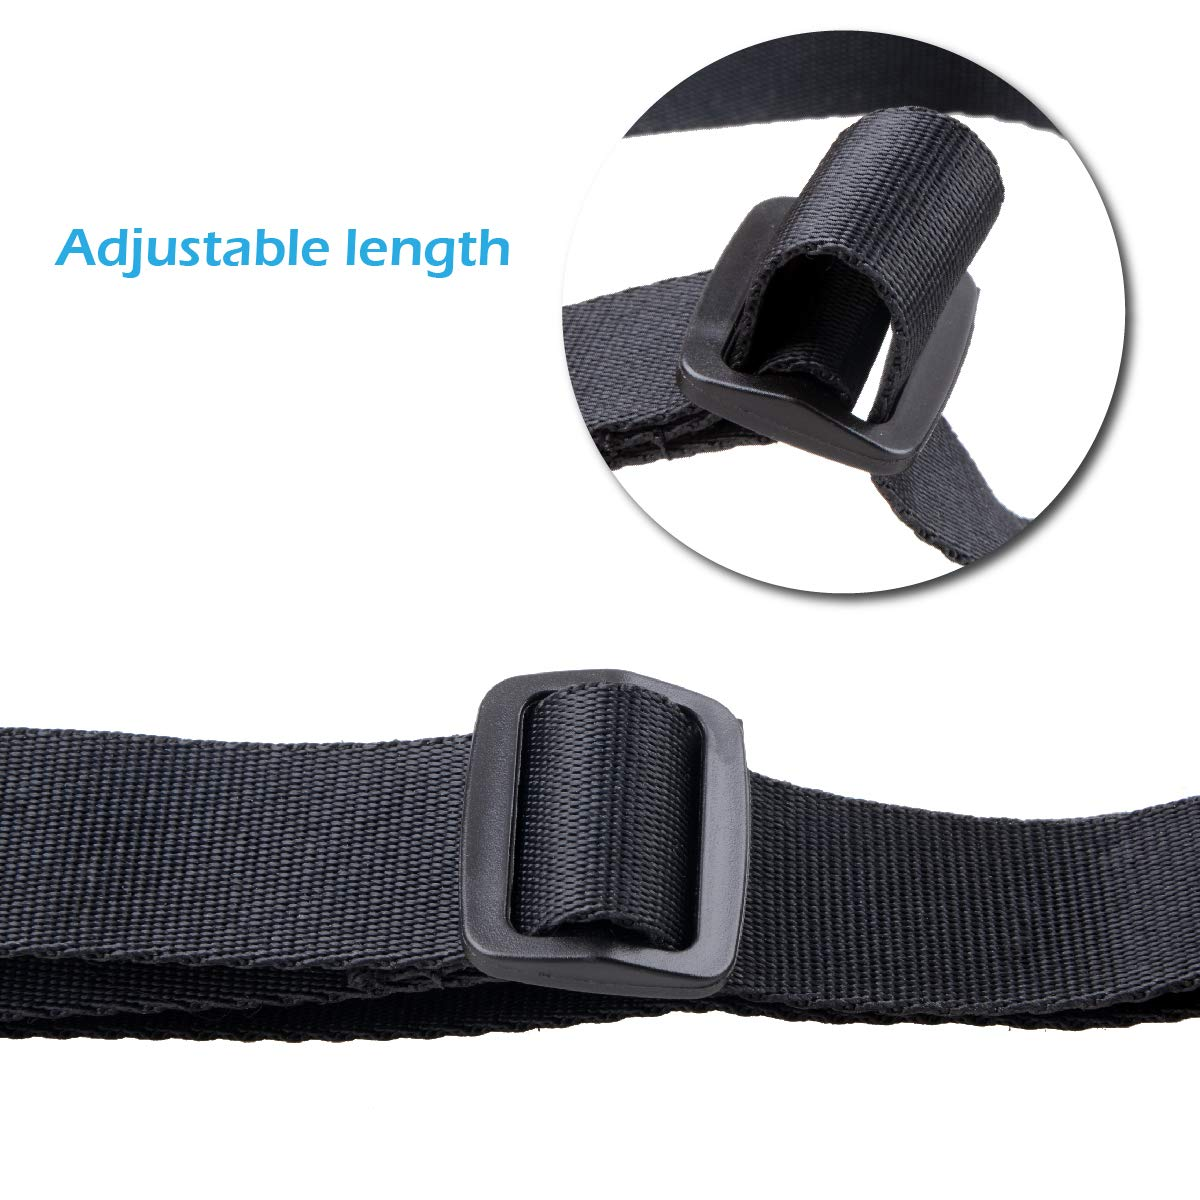 Black - 25mm, 3.28ft TRIWONDER Luggage Straps for Suitcase Travel Belts Accessories Buckle Packing Straps Adjustable Heavy Duty Bag Straps 4 Pack